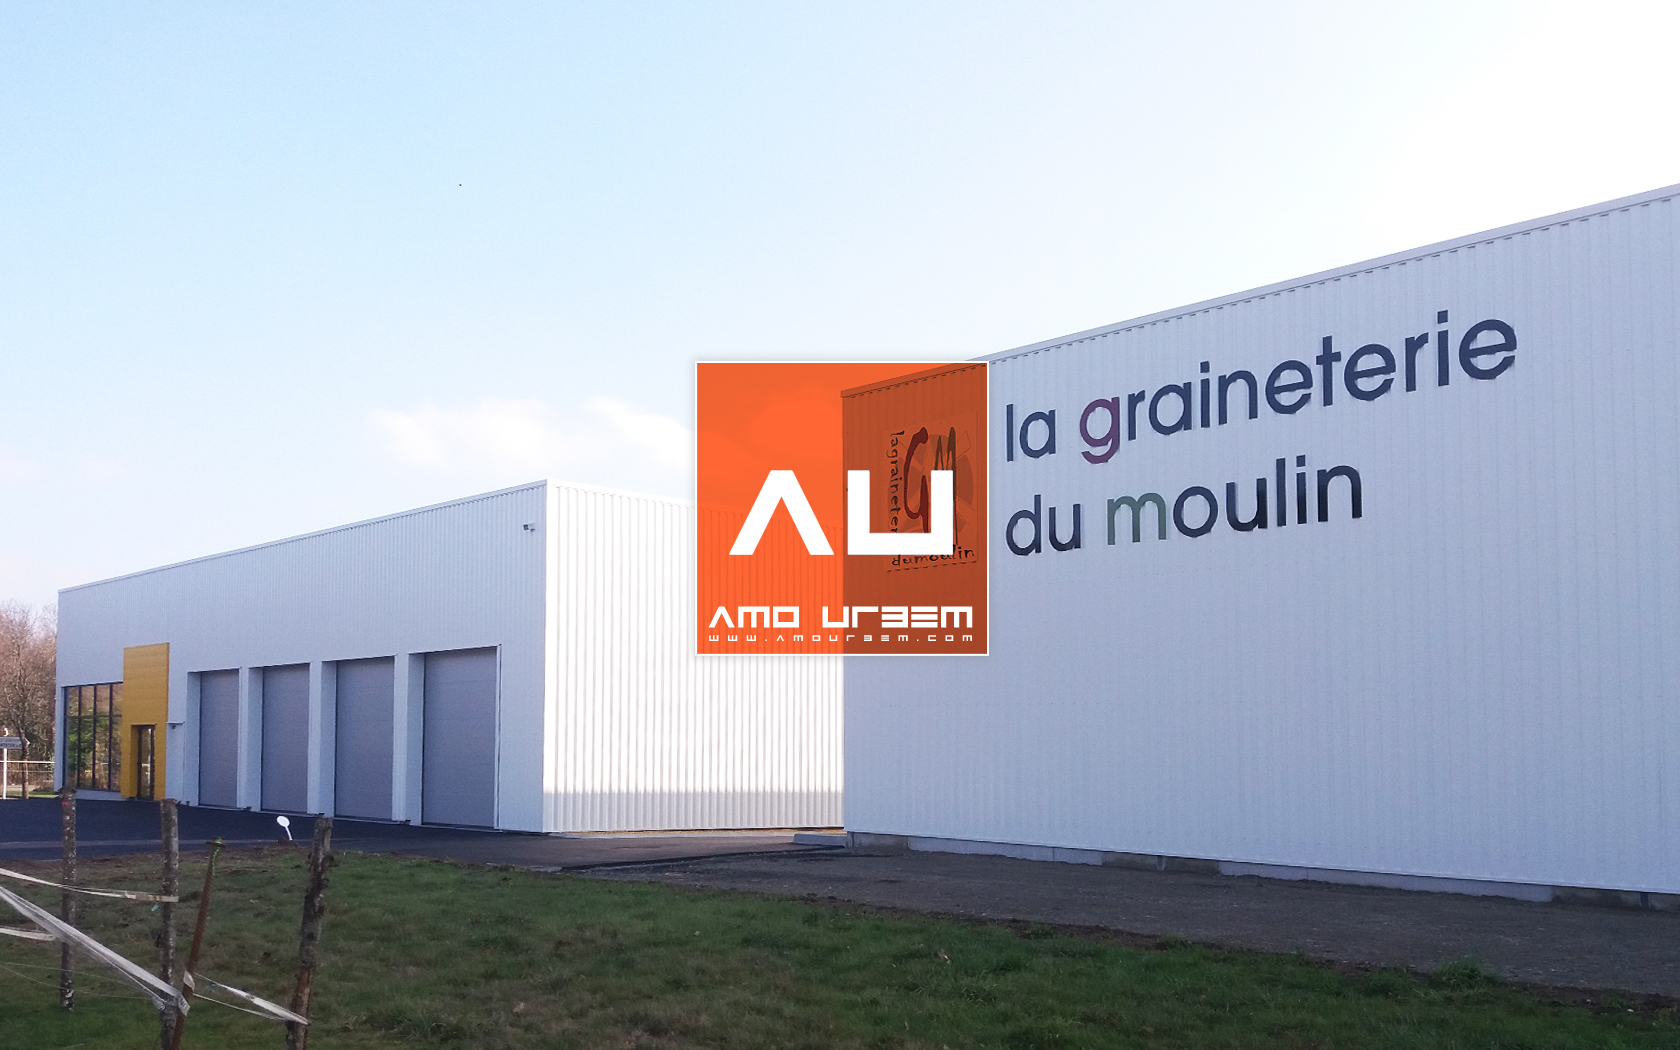 Garage renault graineterie amo urbem agence d for Garage renault saint denis